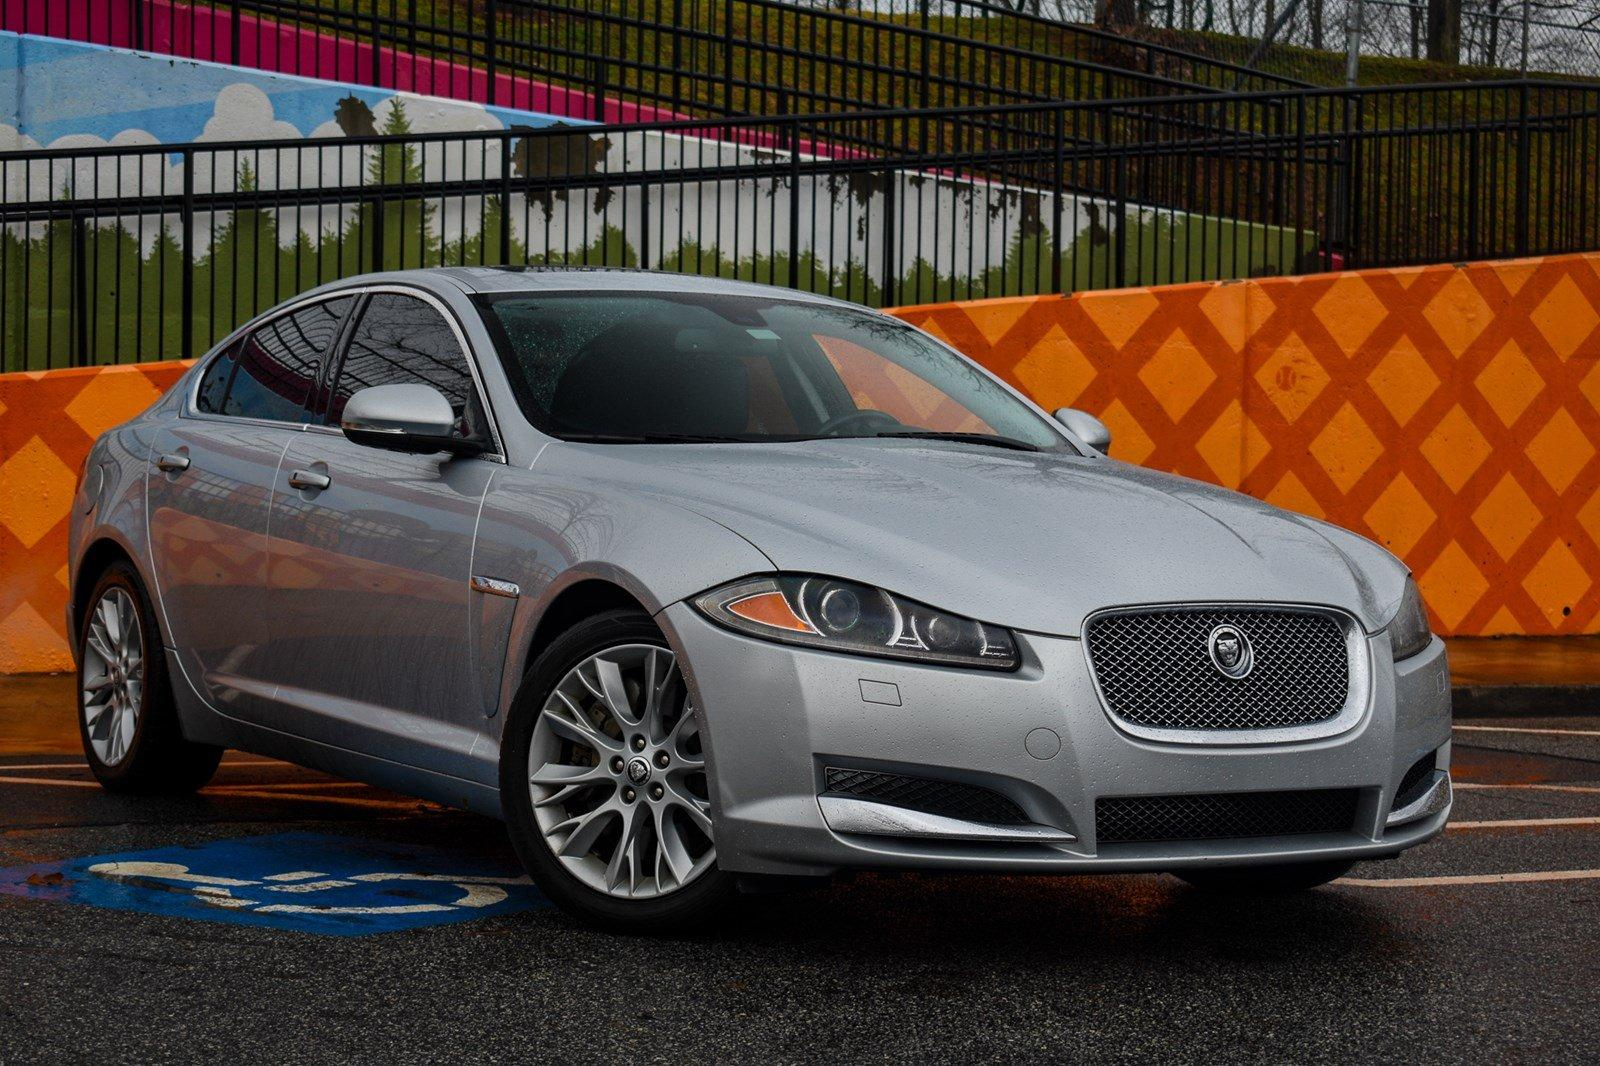 Used 2013 Jaguar XF Supercharged | Sandy Springs, GA